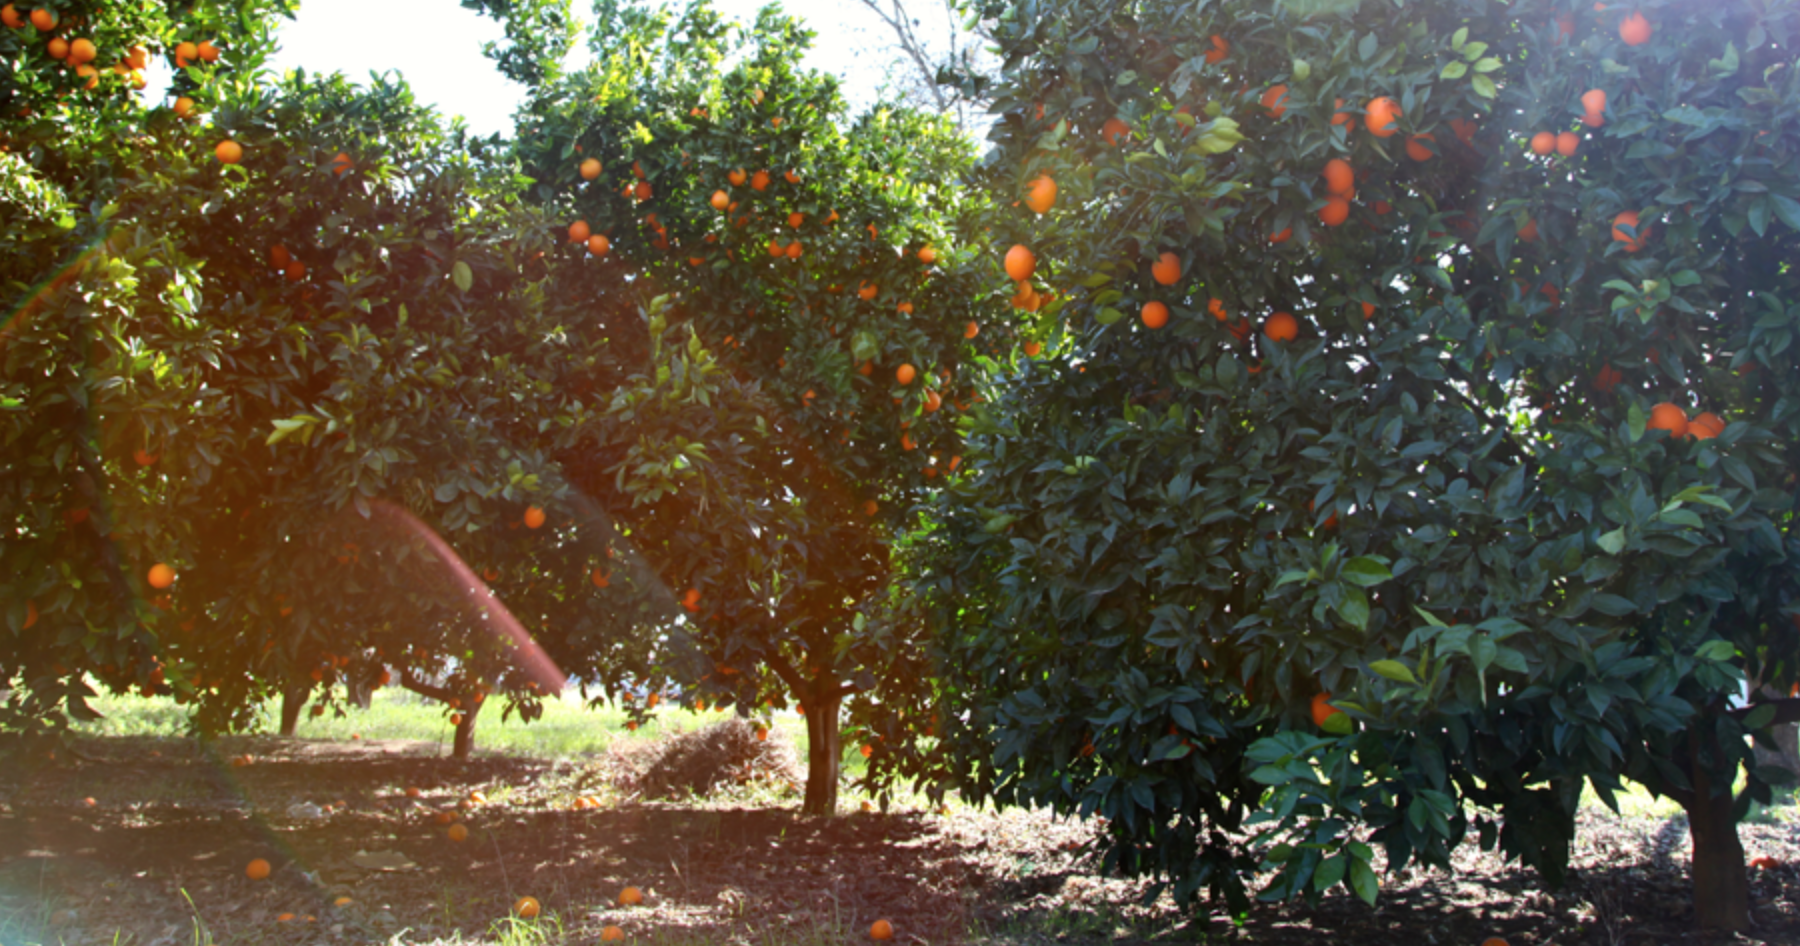 We have been growing citrus since the 1980's and our oranges are sustainably grown. Our orange season lasts from November through early/mid-summer. We believe that growing diverse varieties is essential to keeping a sustainable environment, it also gives our customers a choice to develop their preferences on varieties. Our spring season varieties include Trovita, Lane-Late Navels and Valencia Oranges. (Hover below to view citrus descriptions)